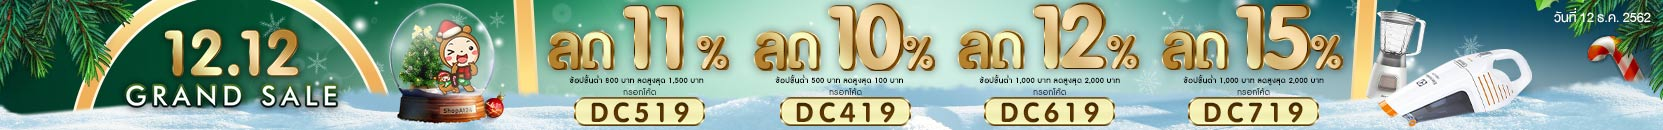 promo code 12.12 Super Grand Sale (12 Dec 19) ช่วงที่ 4 (20.00 น.)